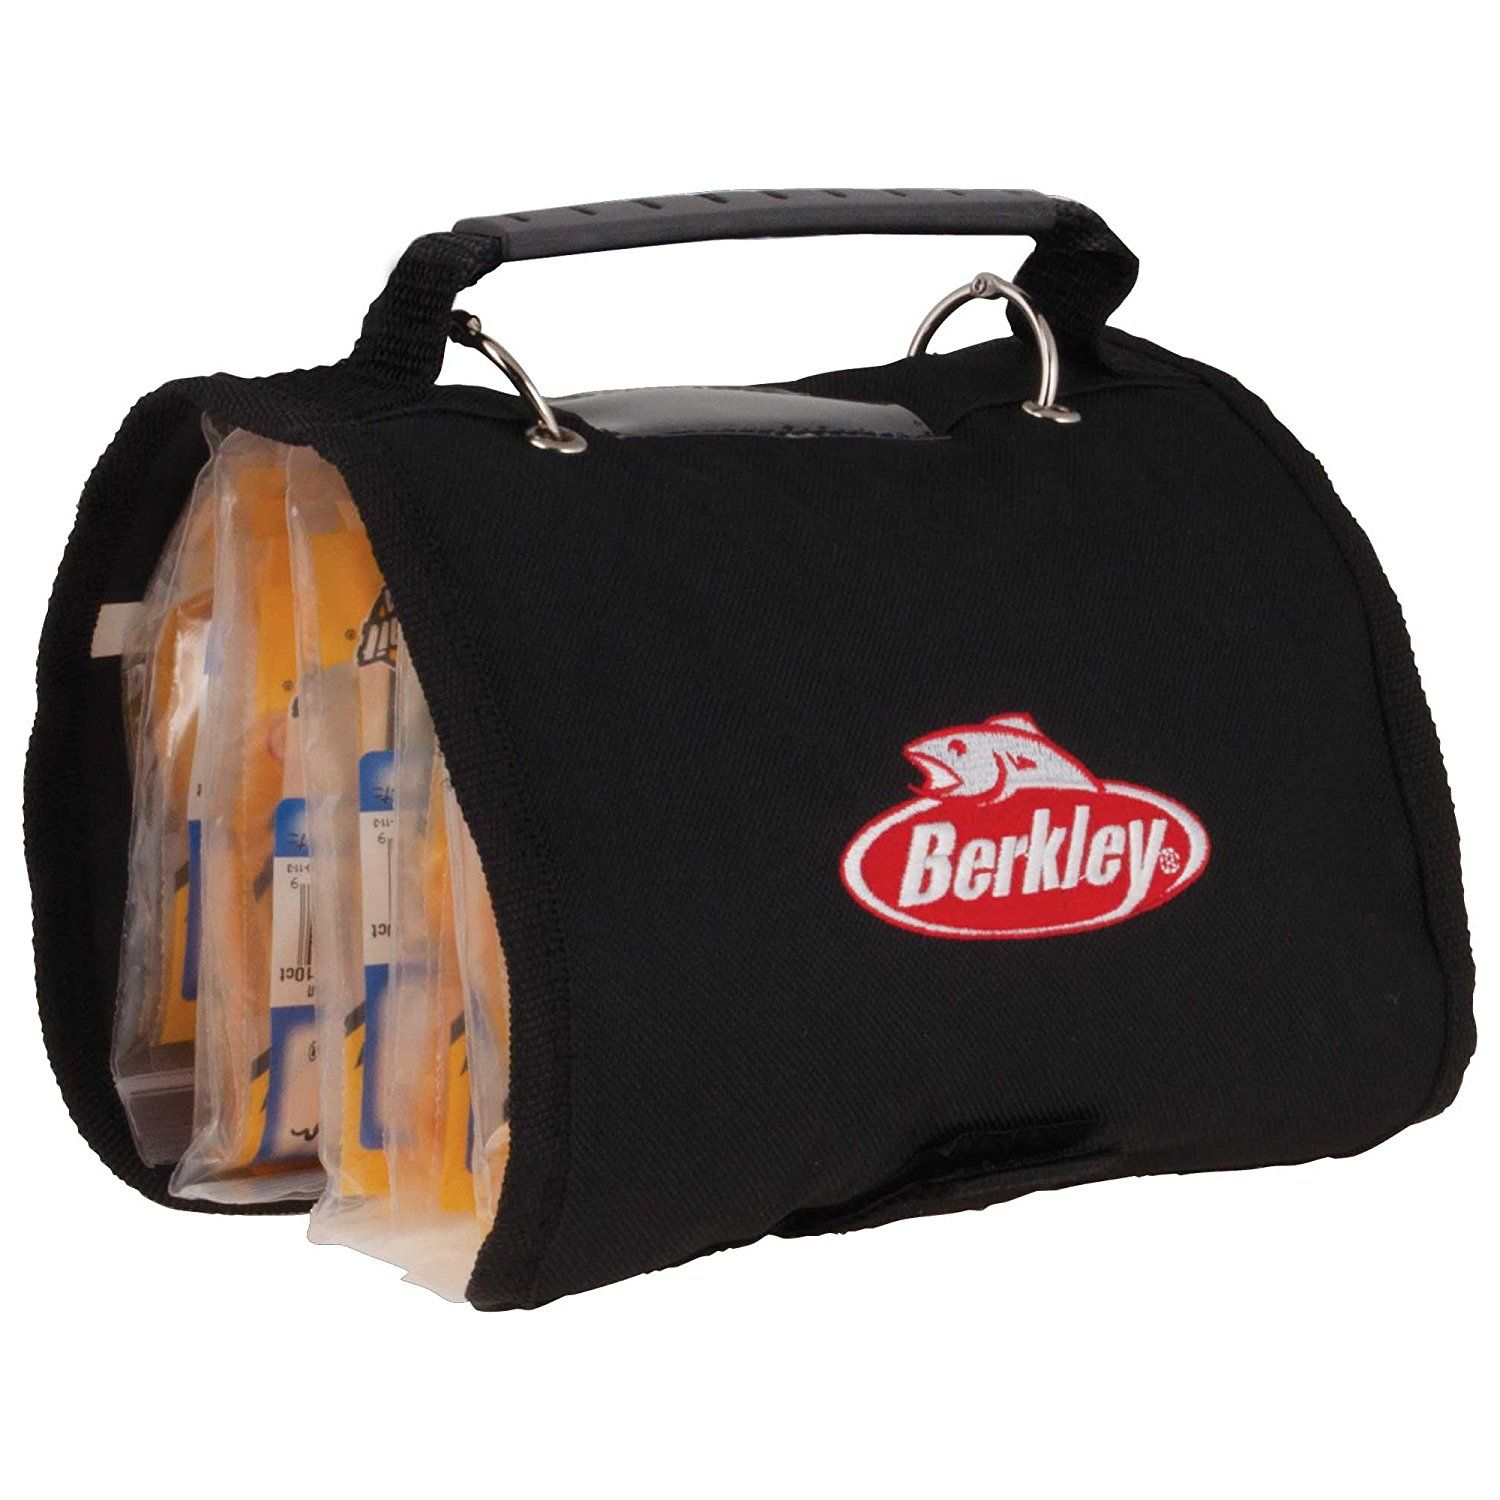 Berkley Max Capacity Bait Notebook -- You can get more details by clicking on the image.